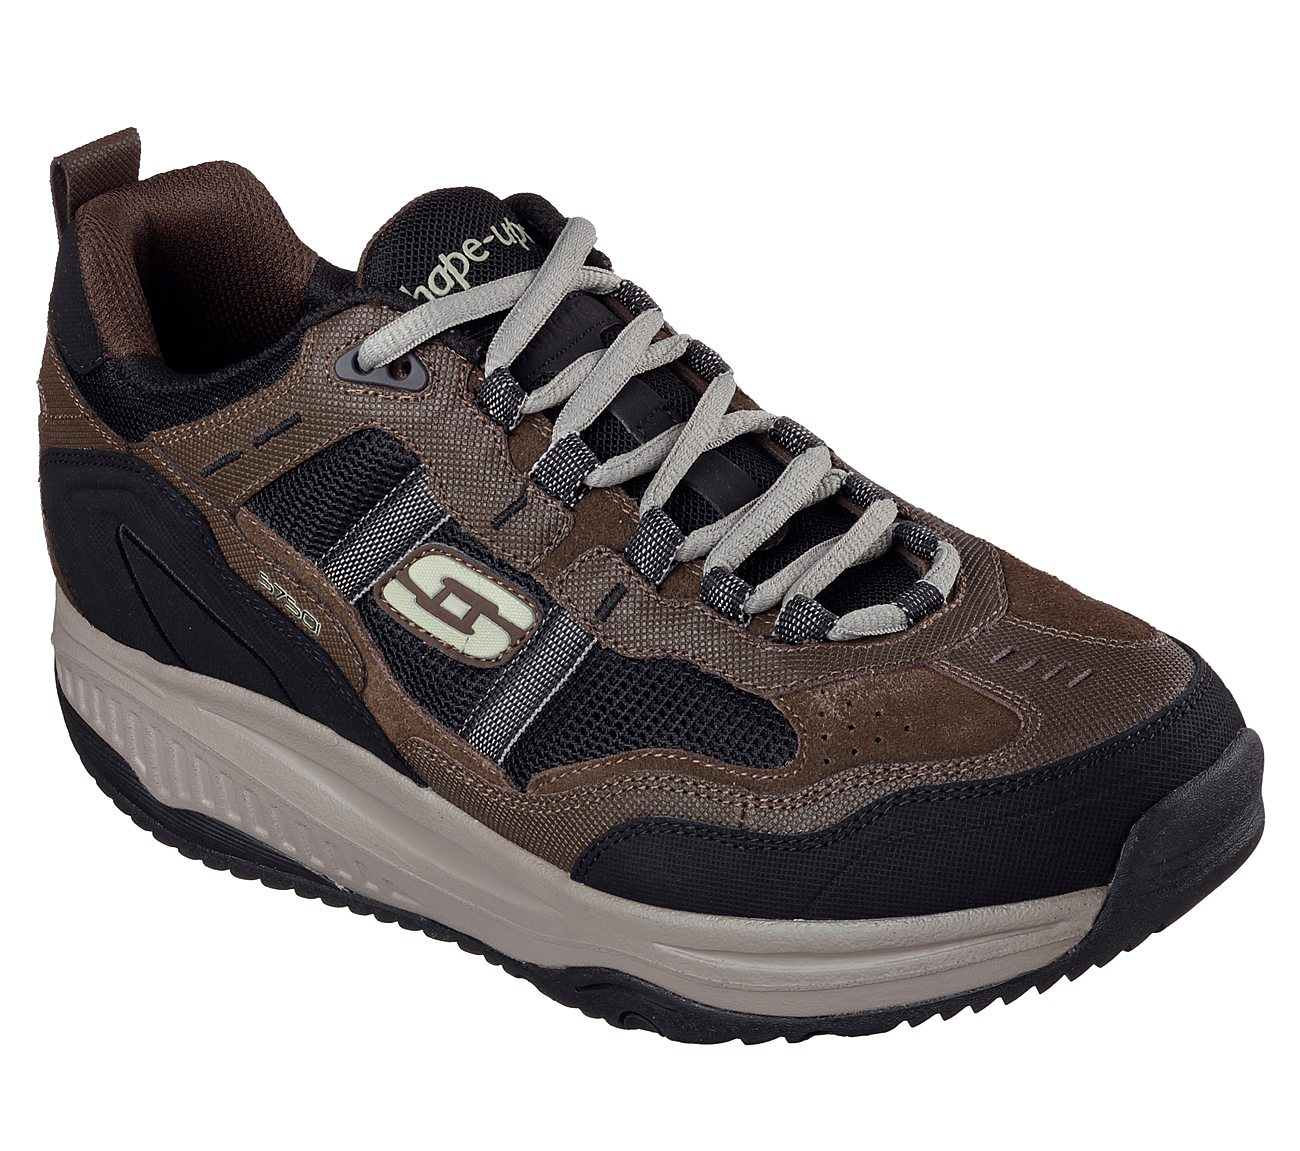 buy skechers shape ups 2 0 xt shape ups shoes only. Black Bedroom Furniture Sets. Home Design Ideas